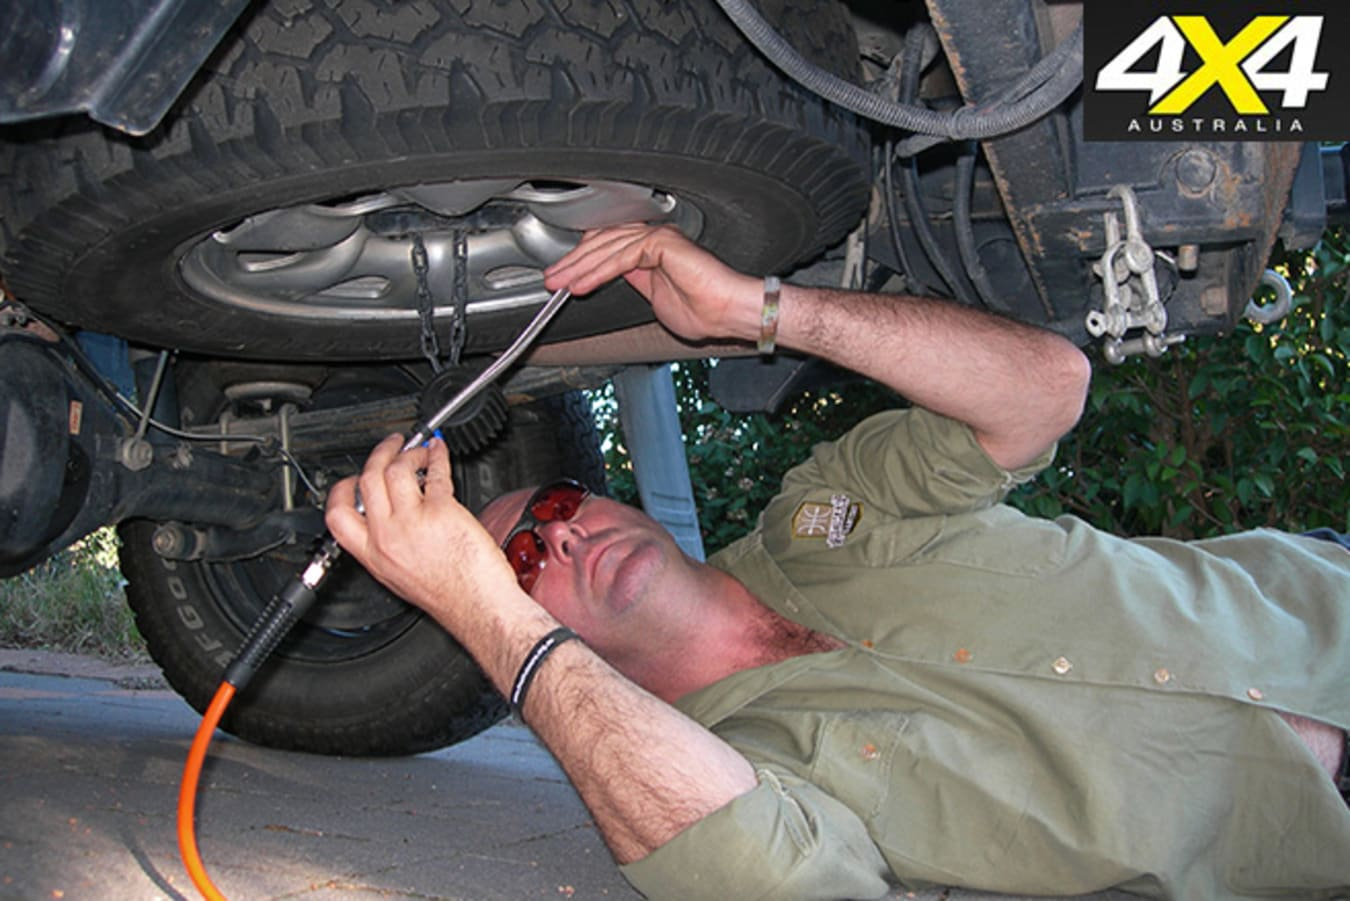 Always check a spare tyre's pressure before a trip.